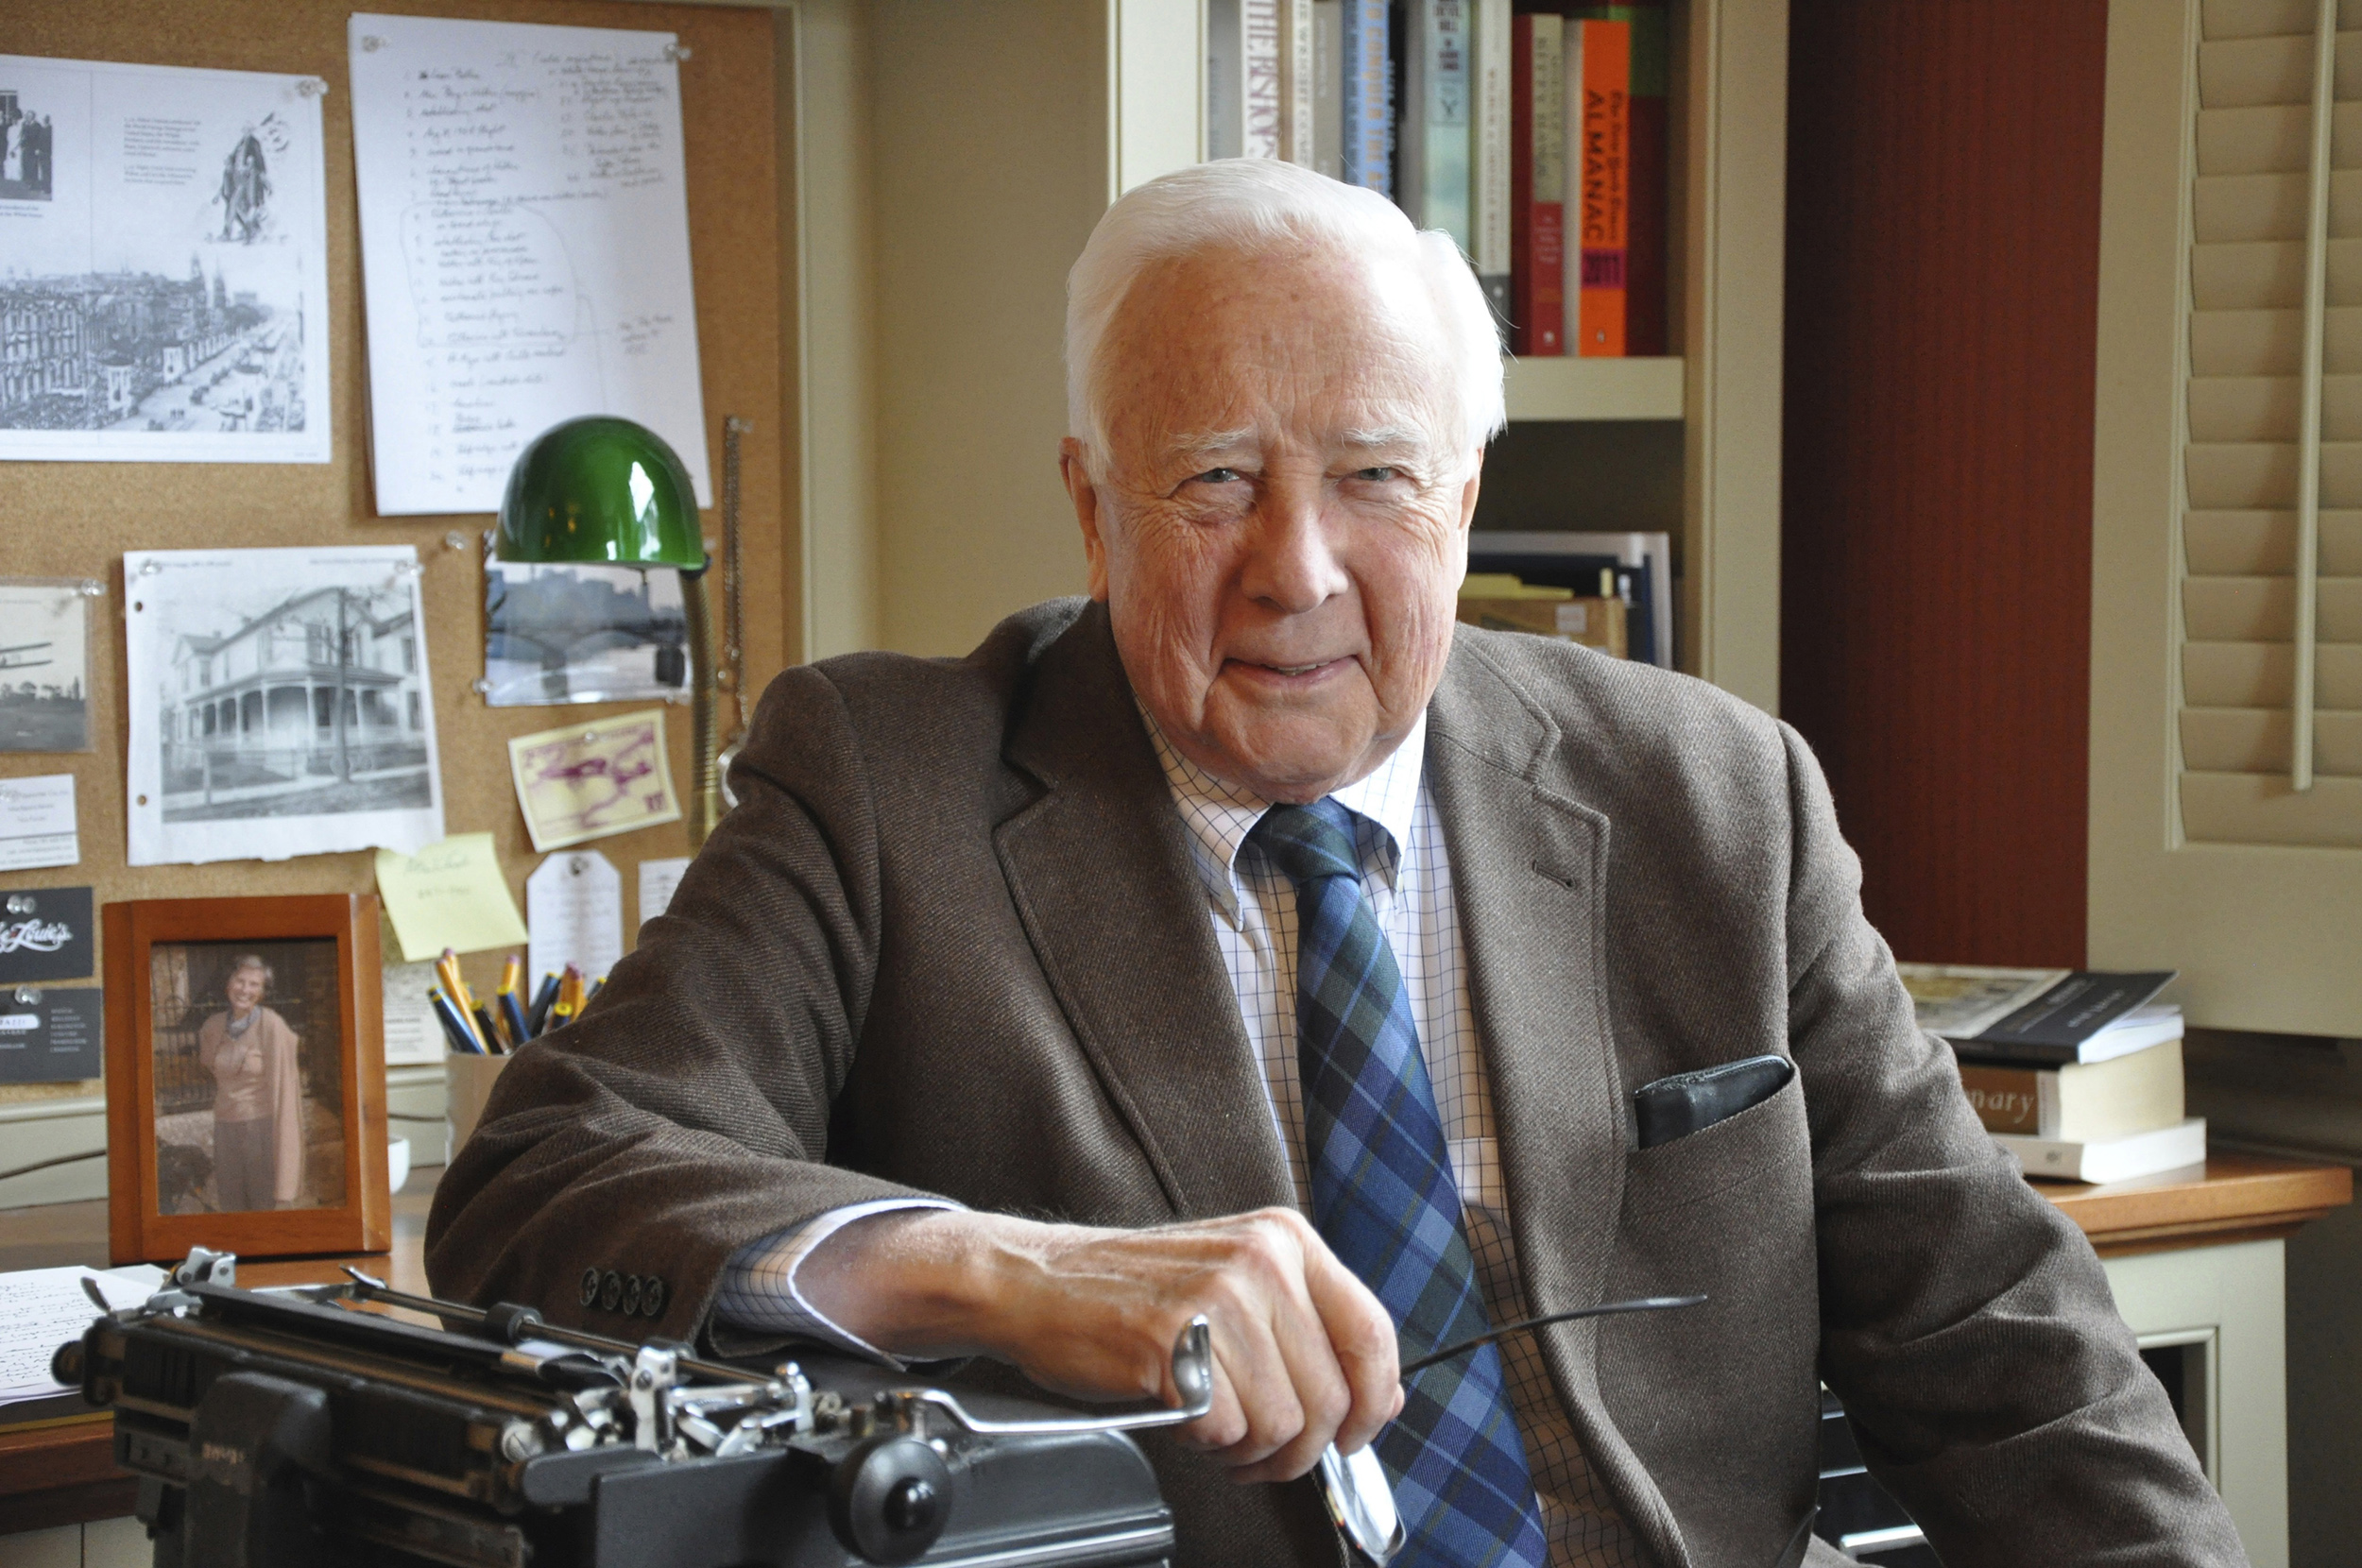 David McCullough photographed by William B. McCullough